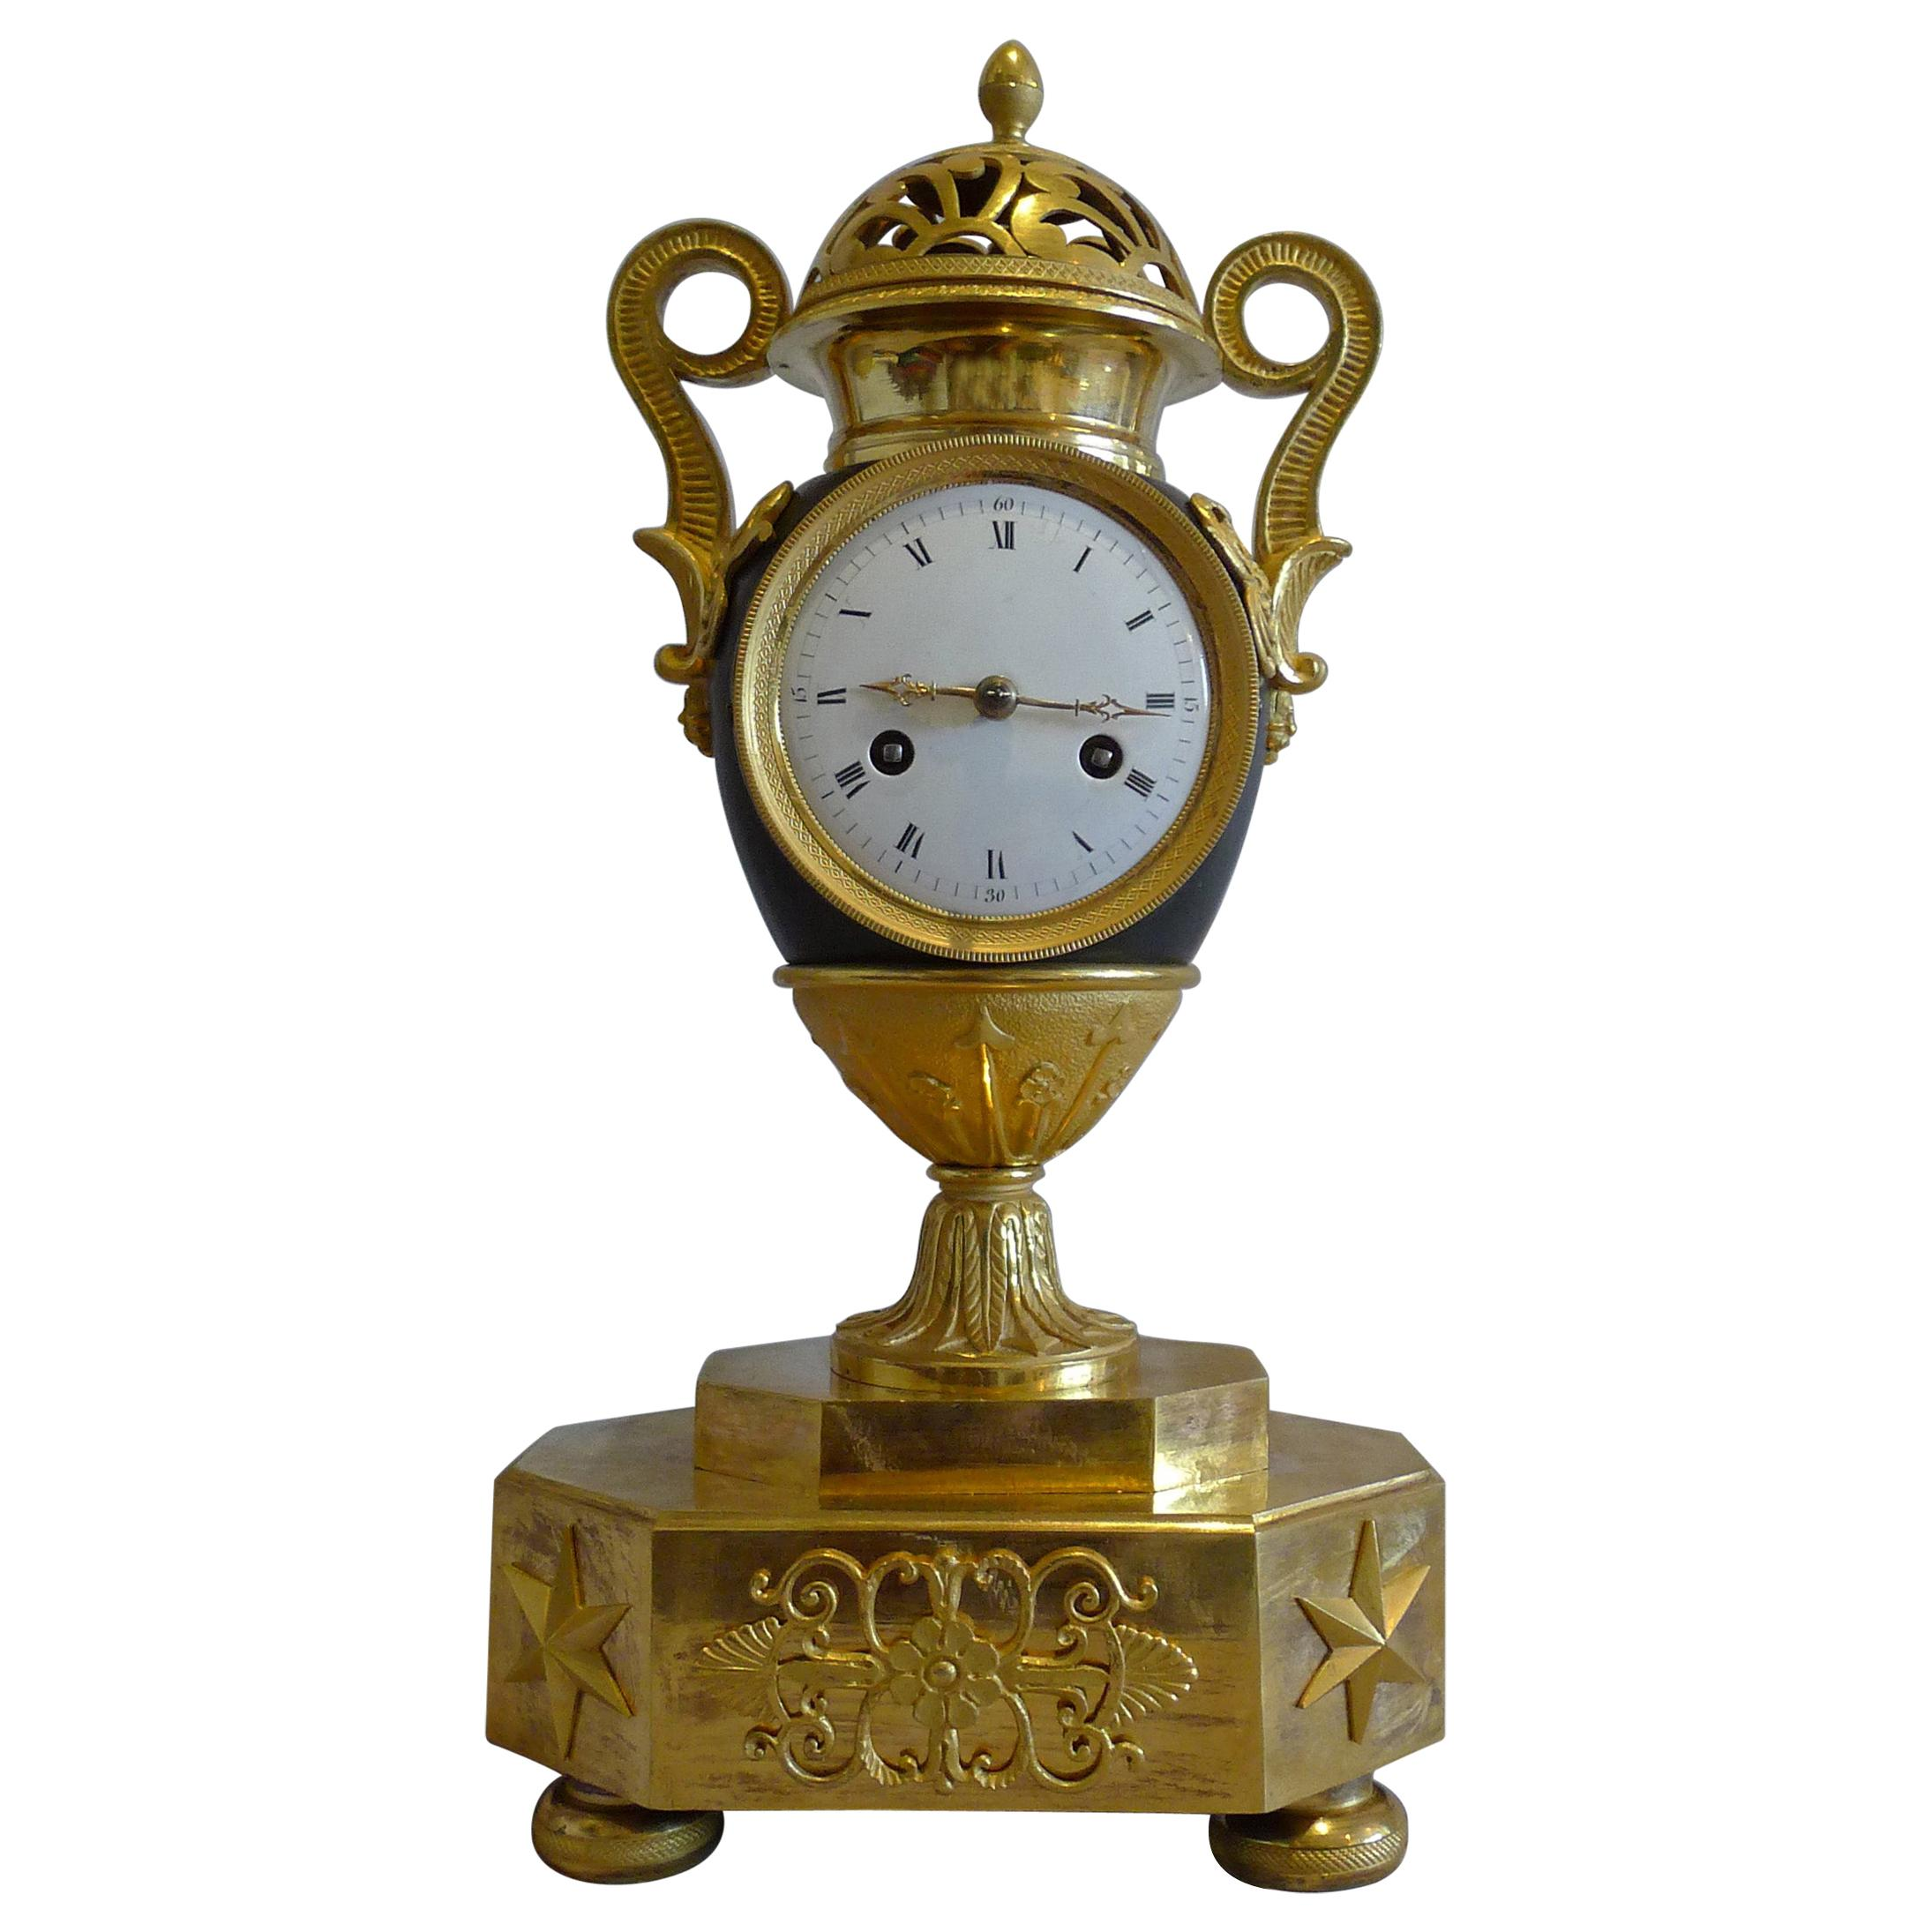 French Empire Patinated Bronze and Ormolu Vase Clock